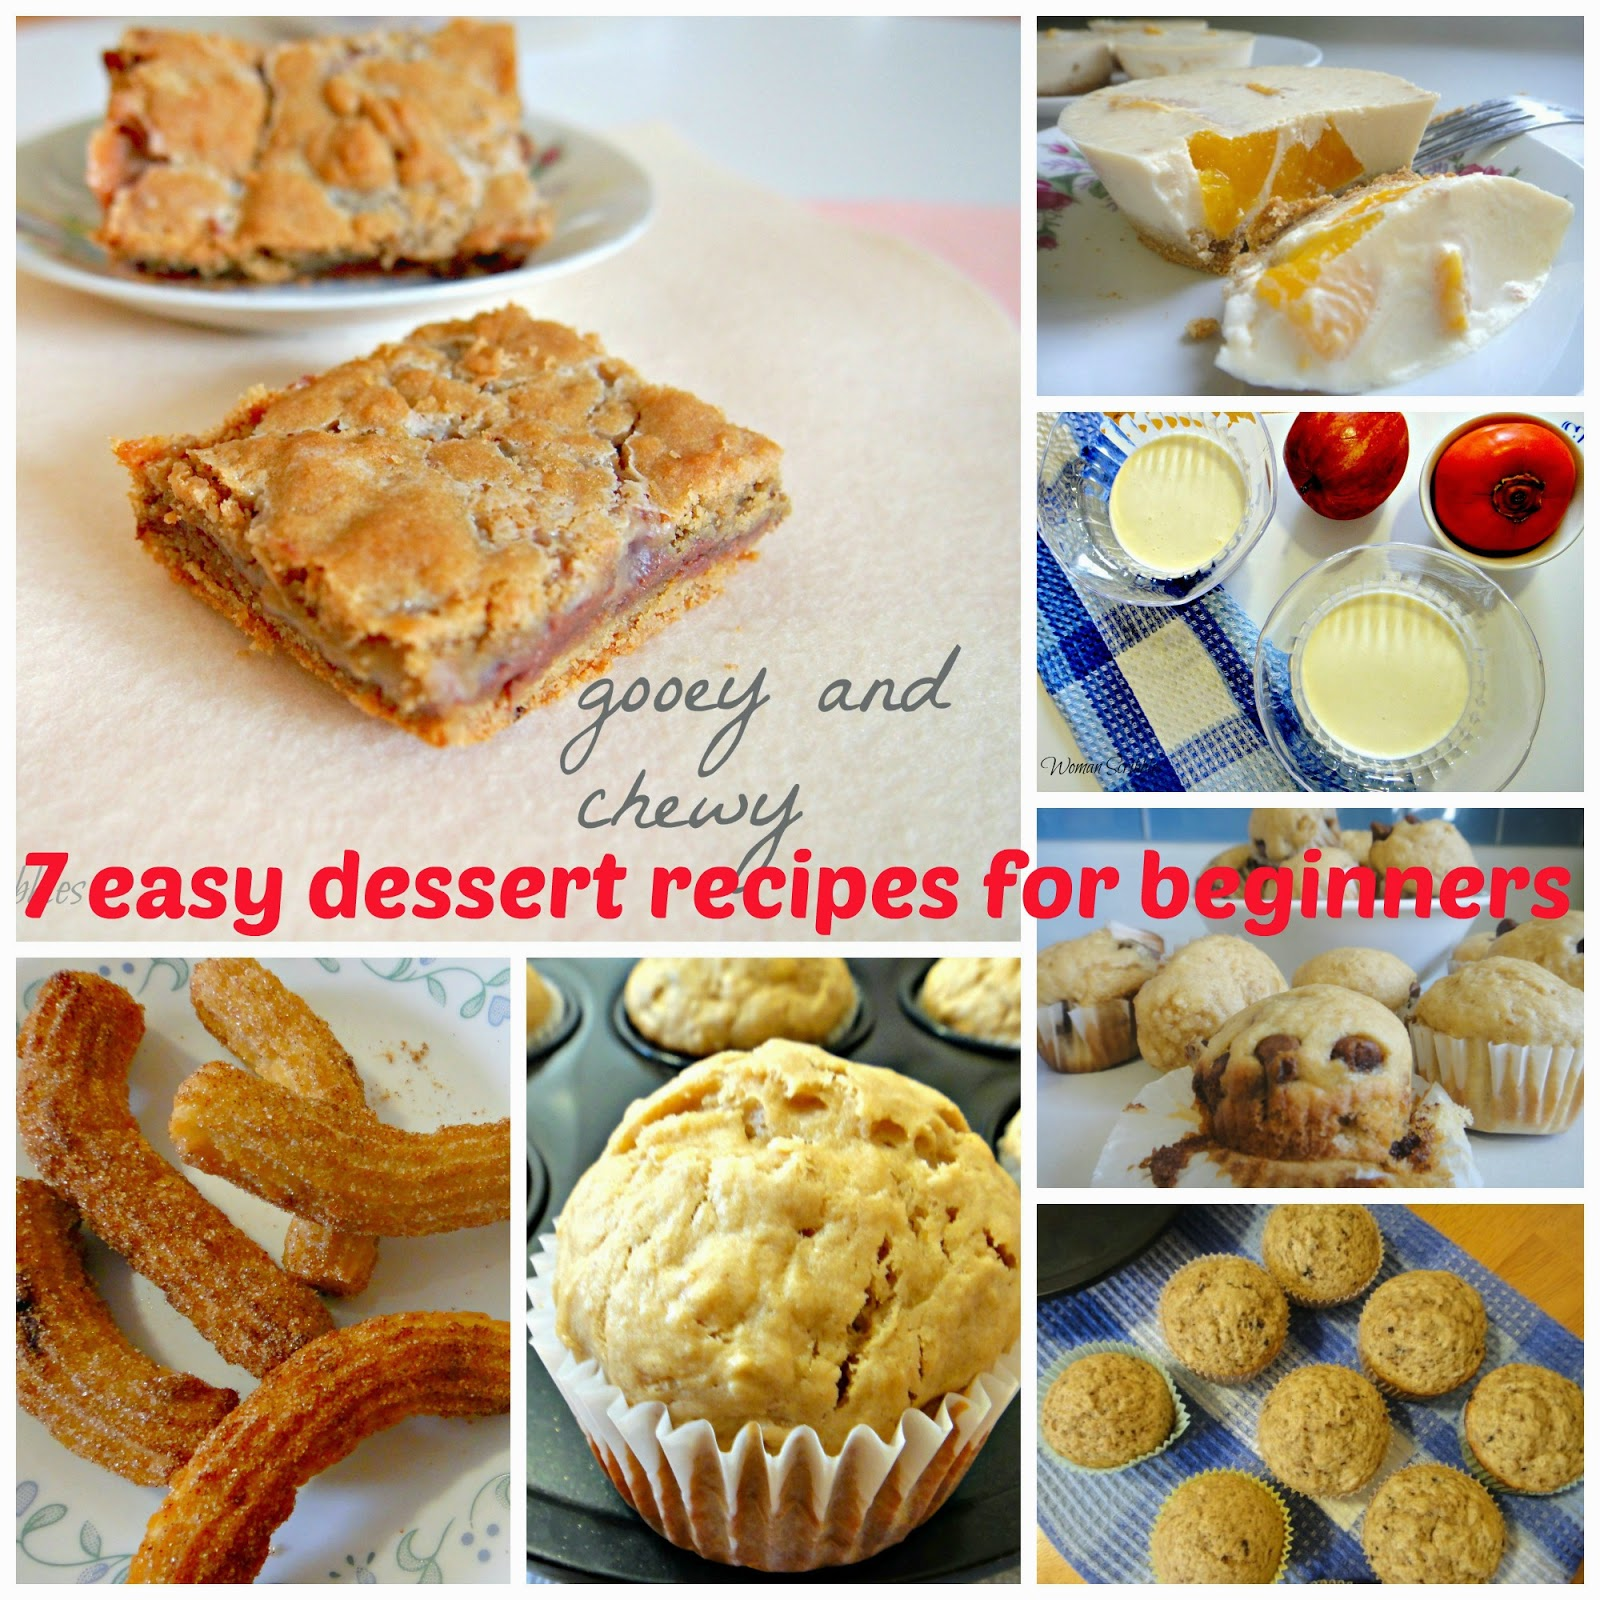 scribbles 7 easy dessert recipes for beginners